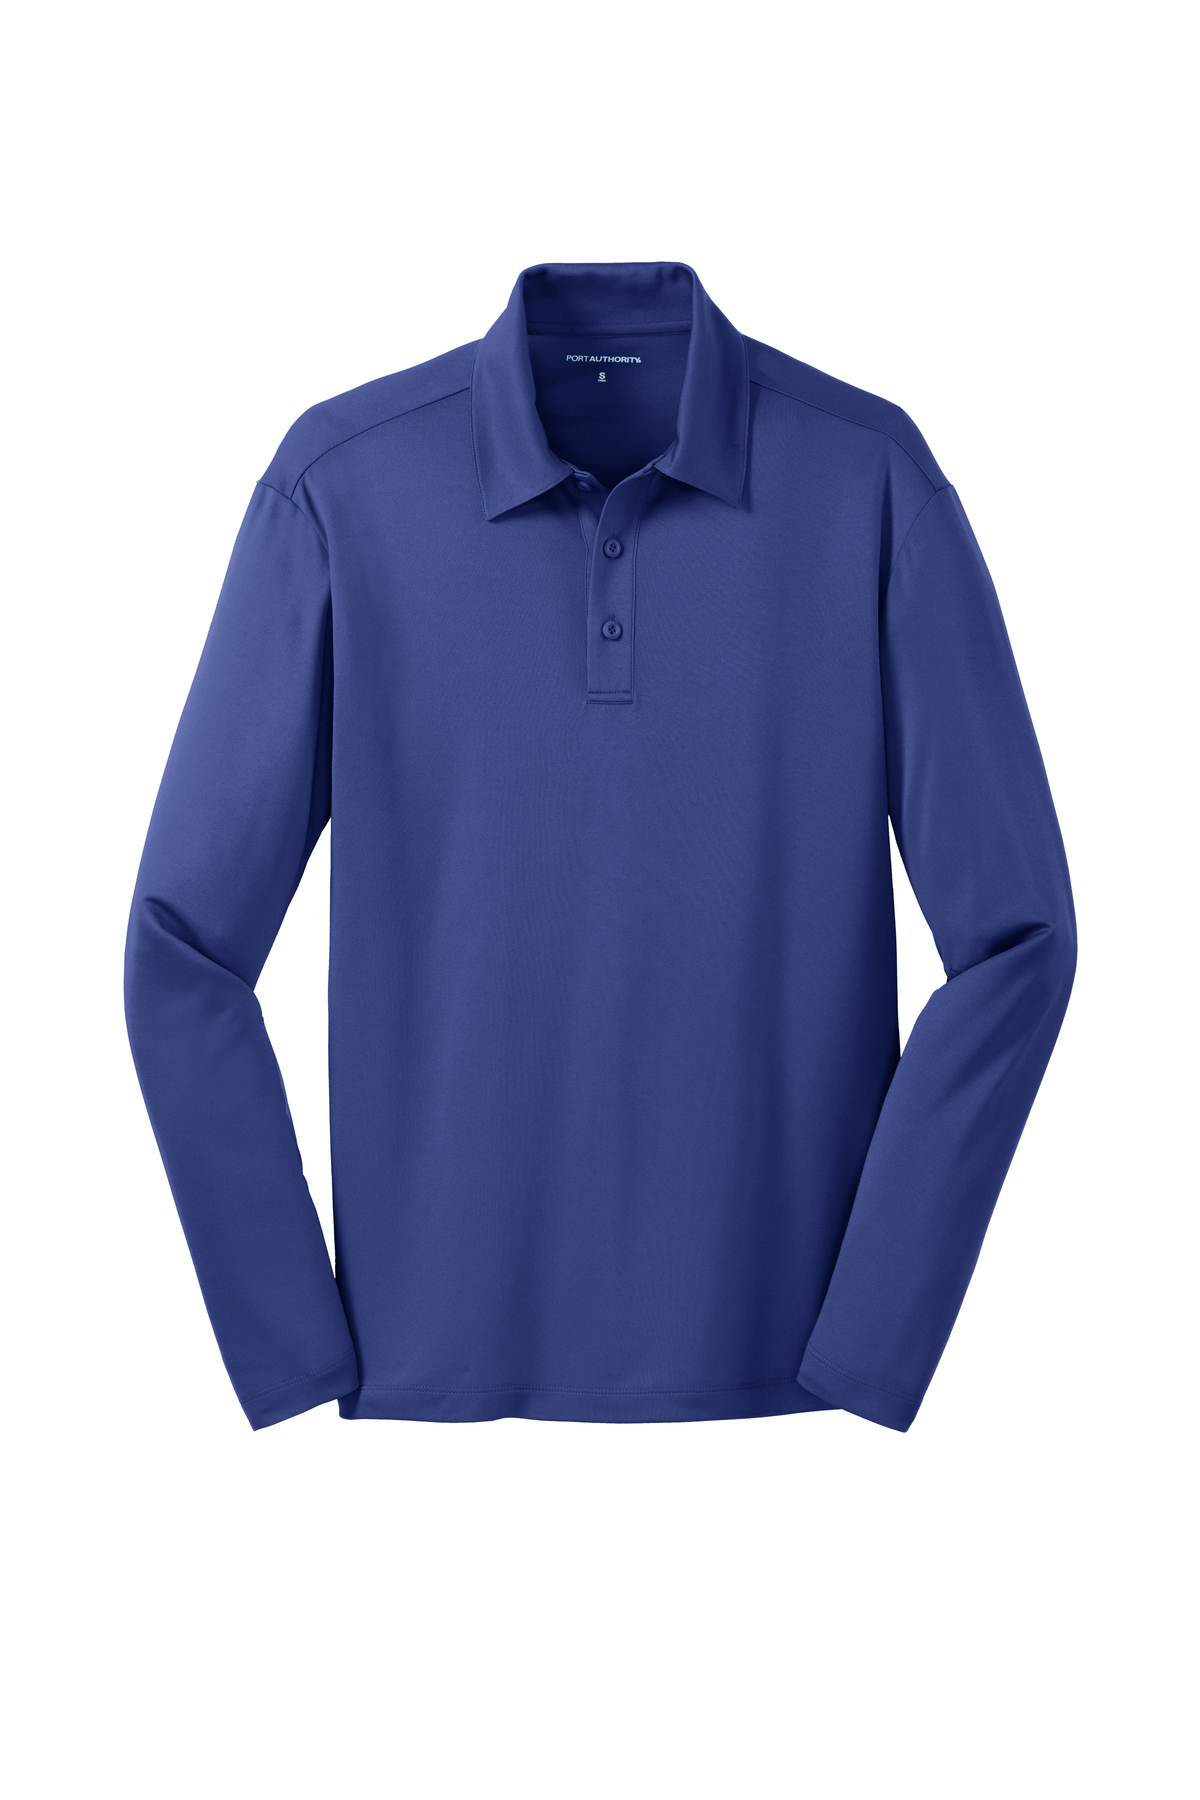 Port Authority® Silk Touch™ Performance Long Sleeve Polo. K540LS Steel Grey L Gkwewns